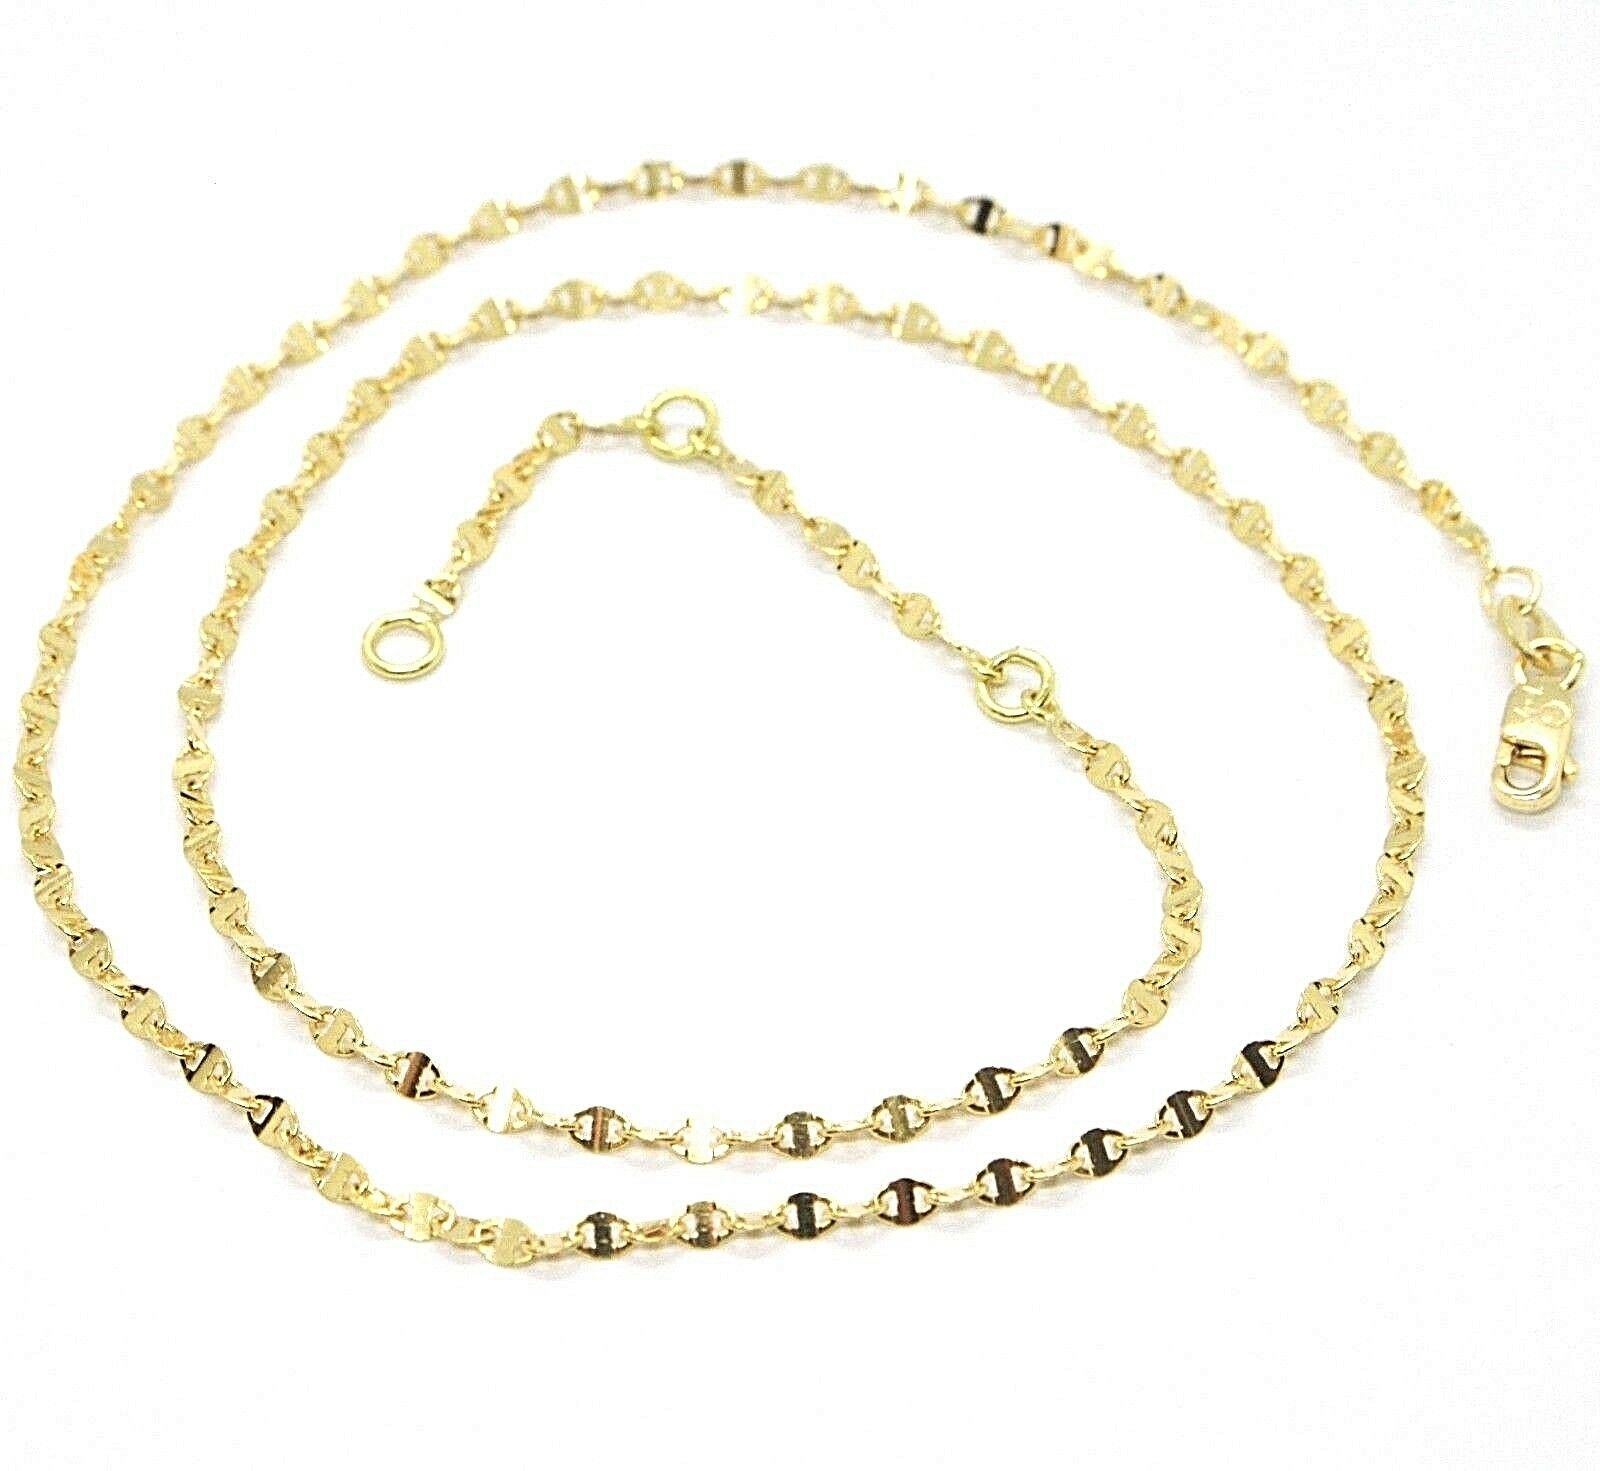 18K YELLOW GOLD CHAIN FLAT NAVY MARINER OVAL BRIGHT LINK 2 MM, 18 INCHES